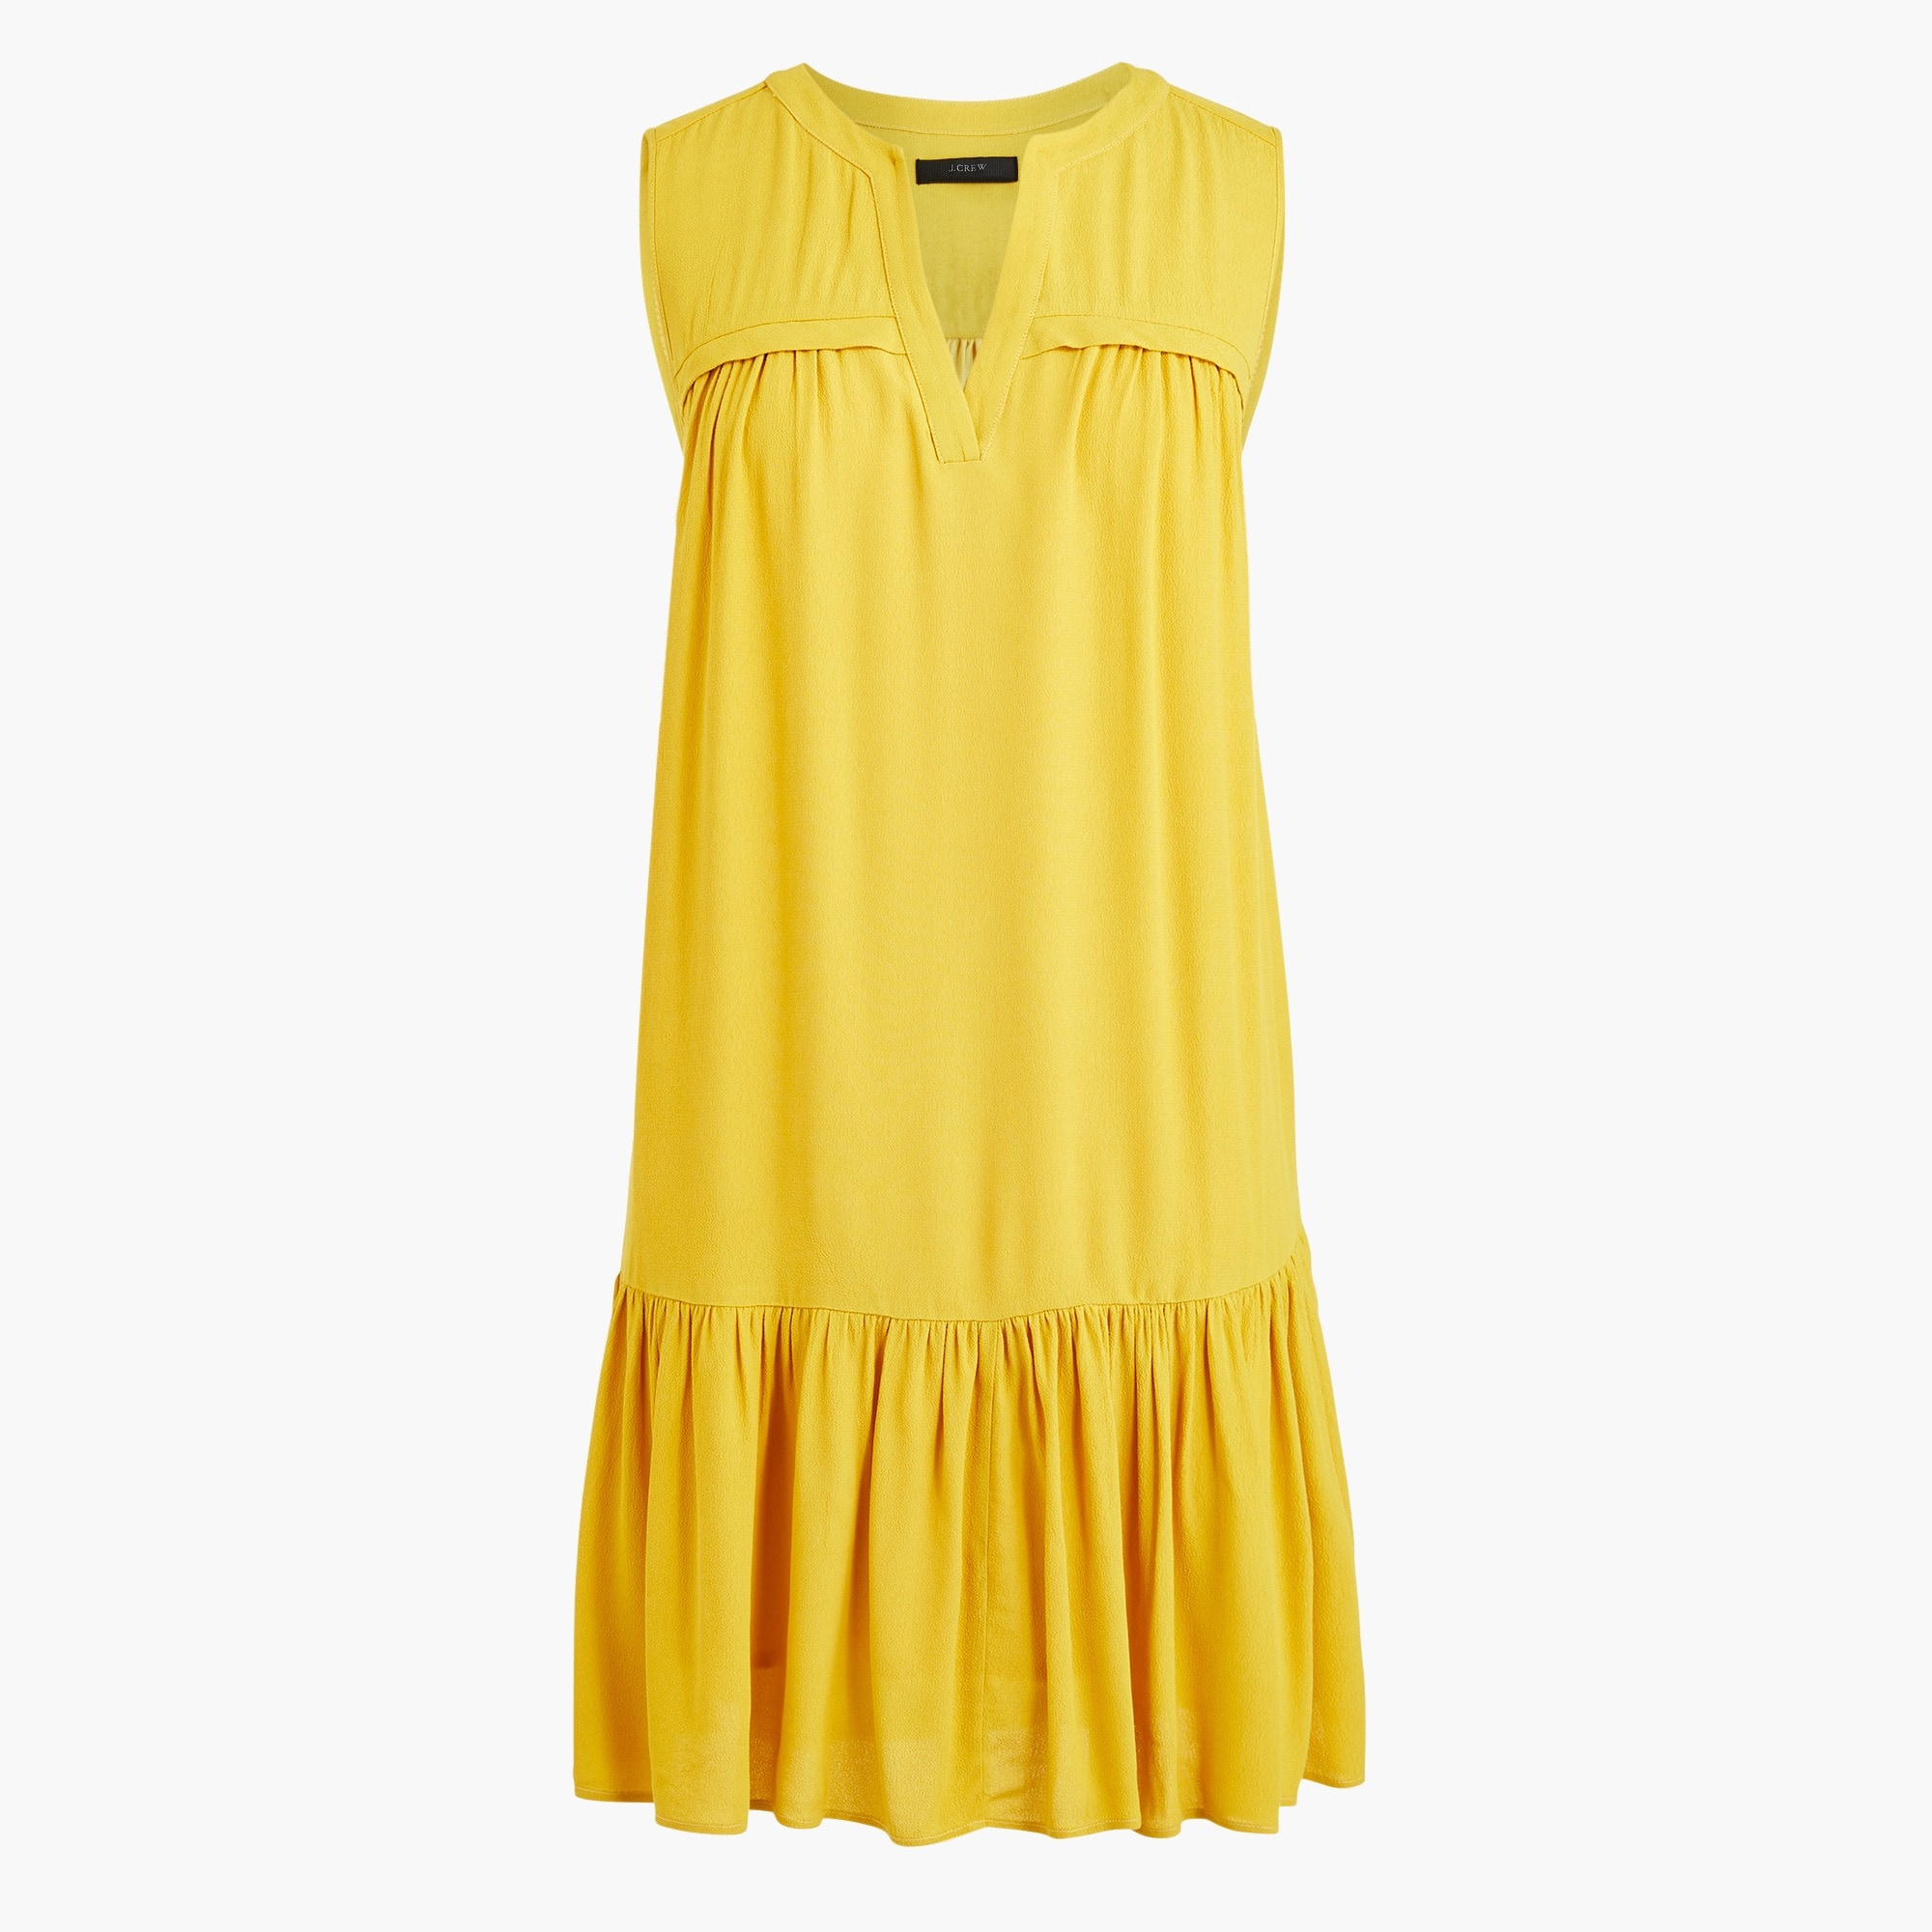 Image 1 for Tall ruffle-hem shift dress